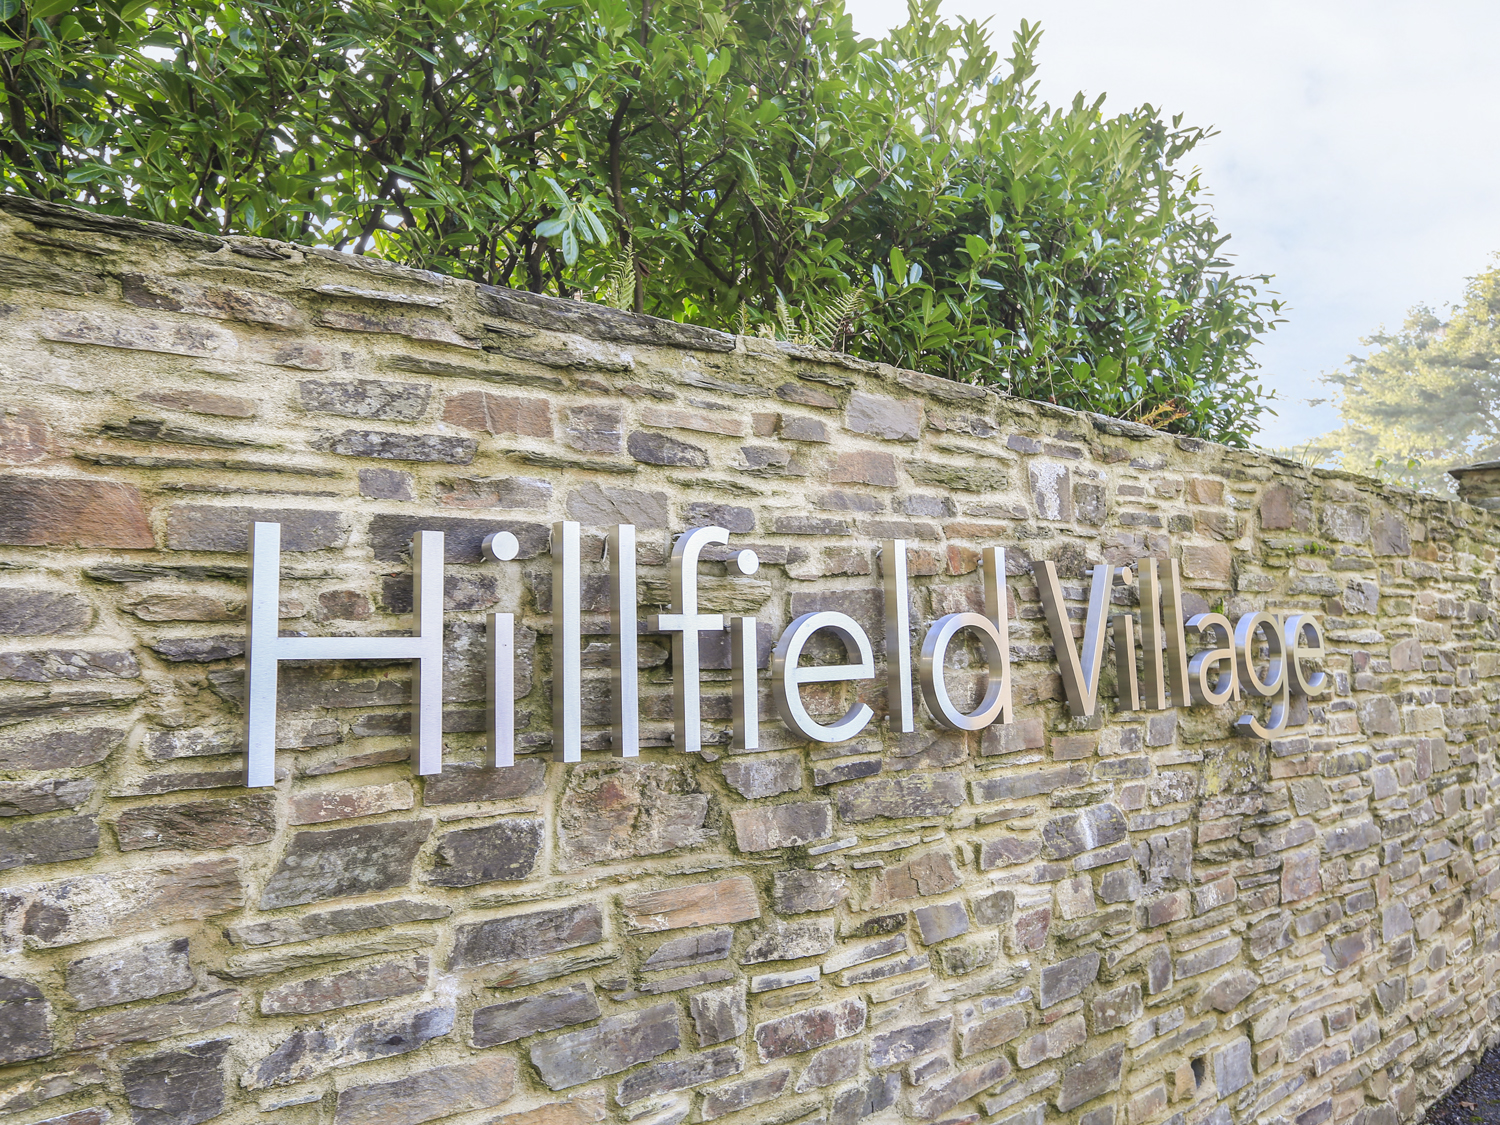 2 The Drive, Hillfield Village Image 12